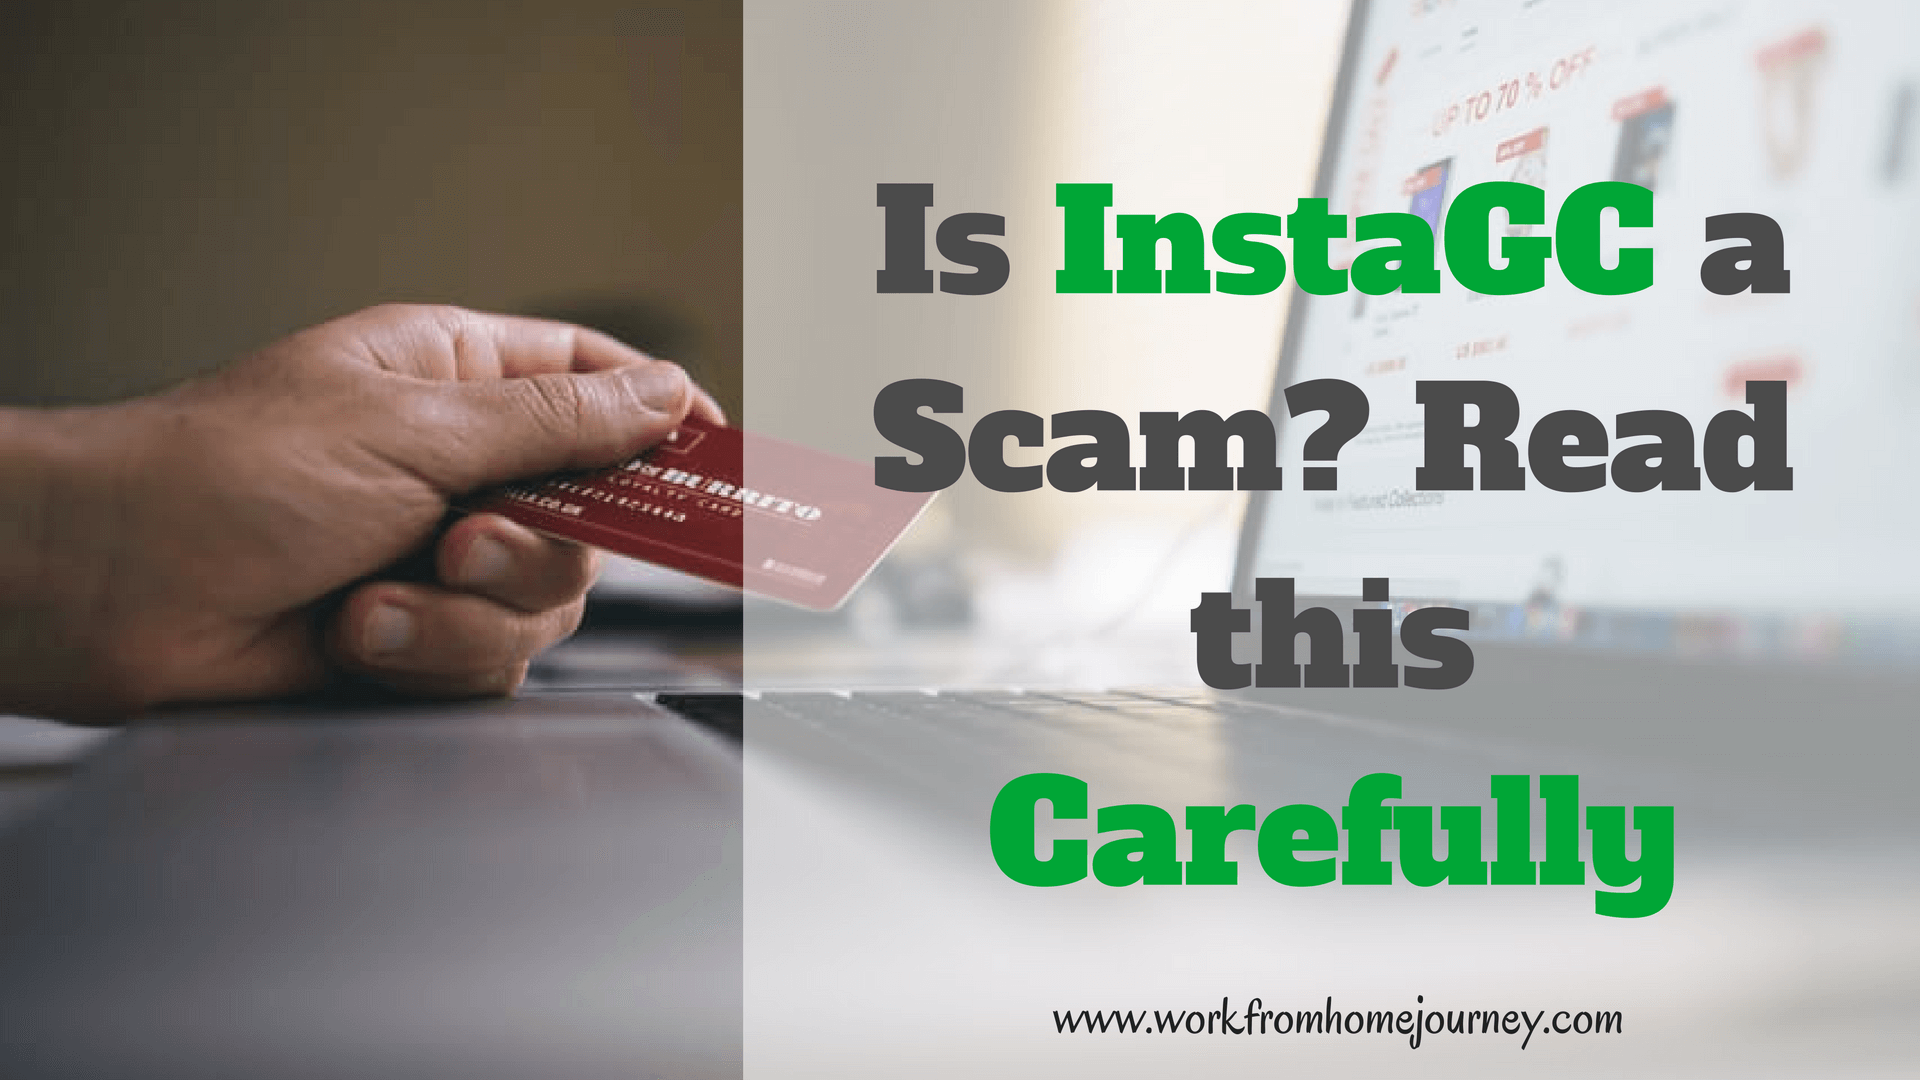 Is InstaGC a Scam? No, But Read This Review Carefully Before Joining!